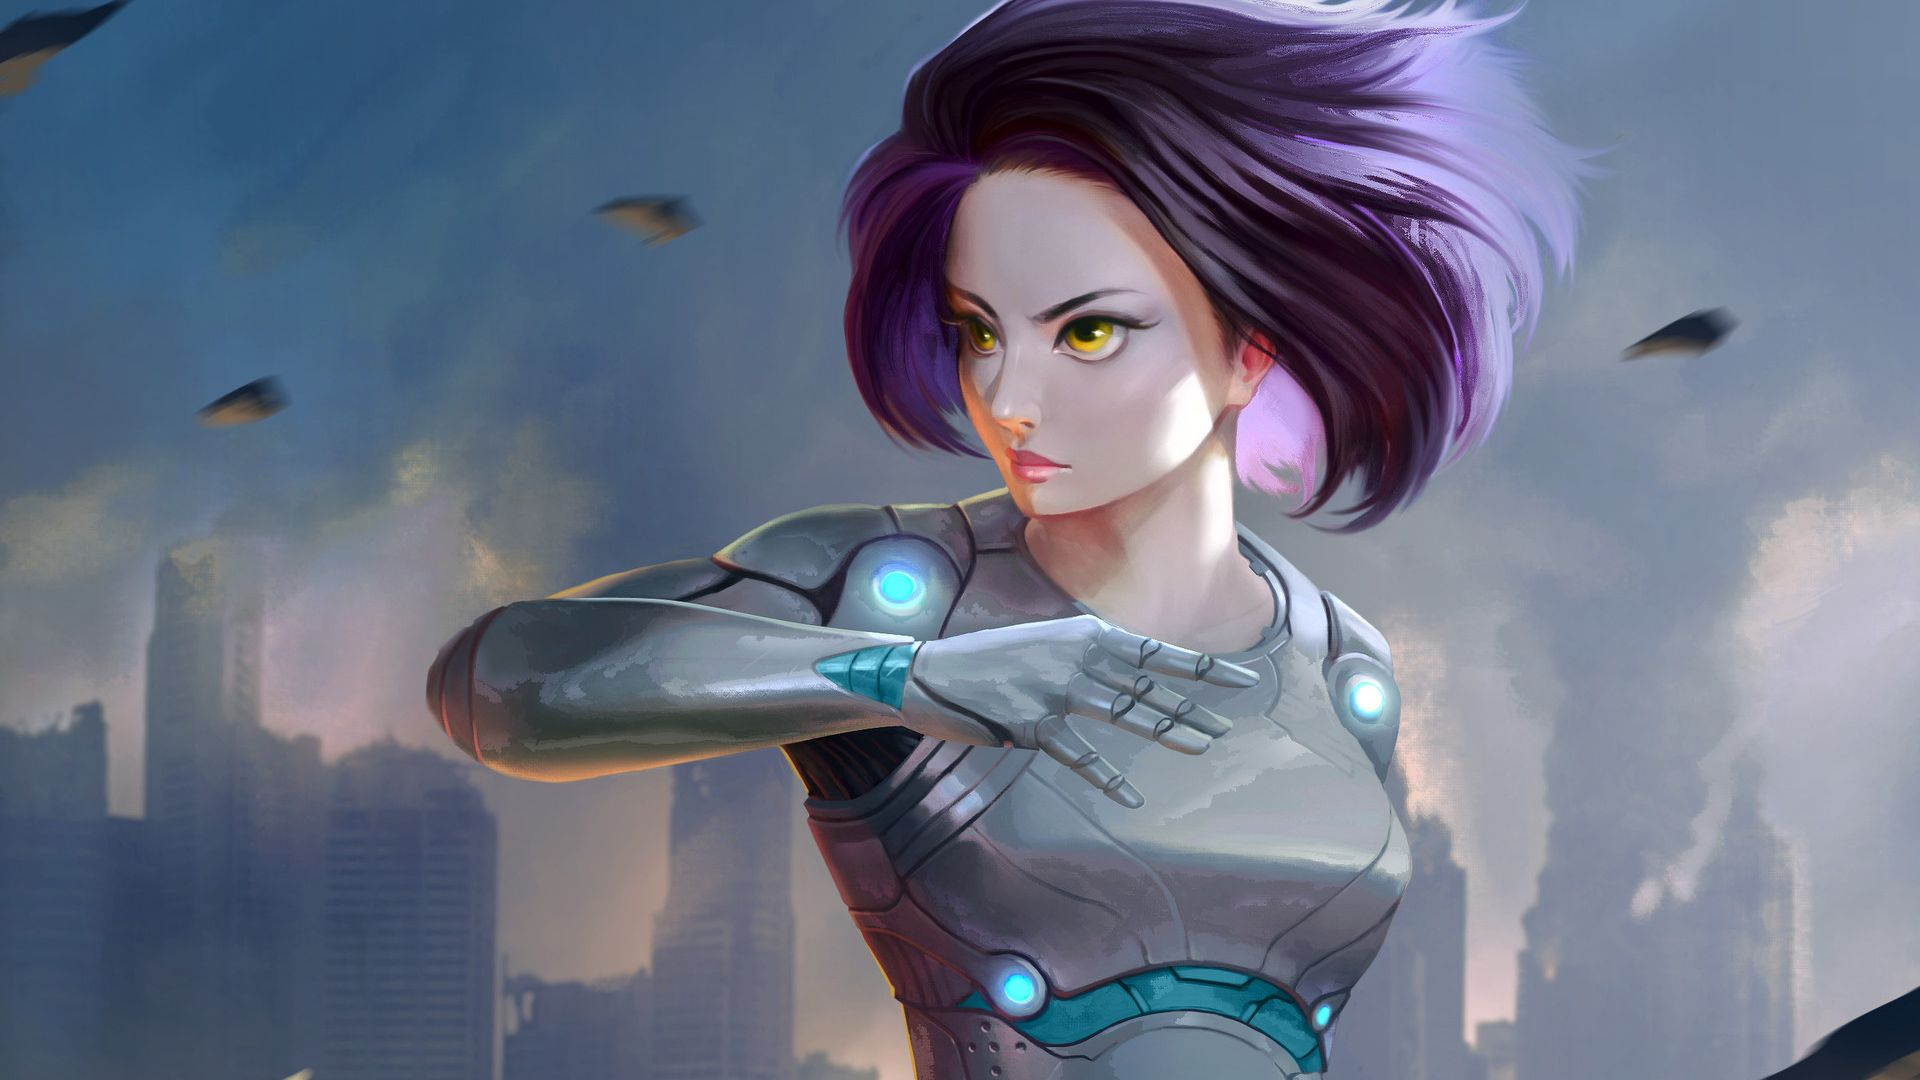 Alita Battle Angel 2 Release Date and Plot Speculations